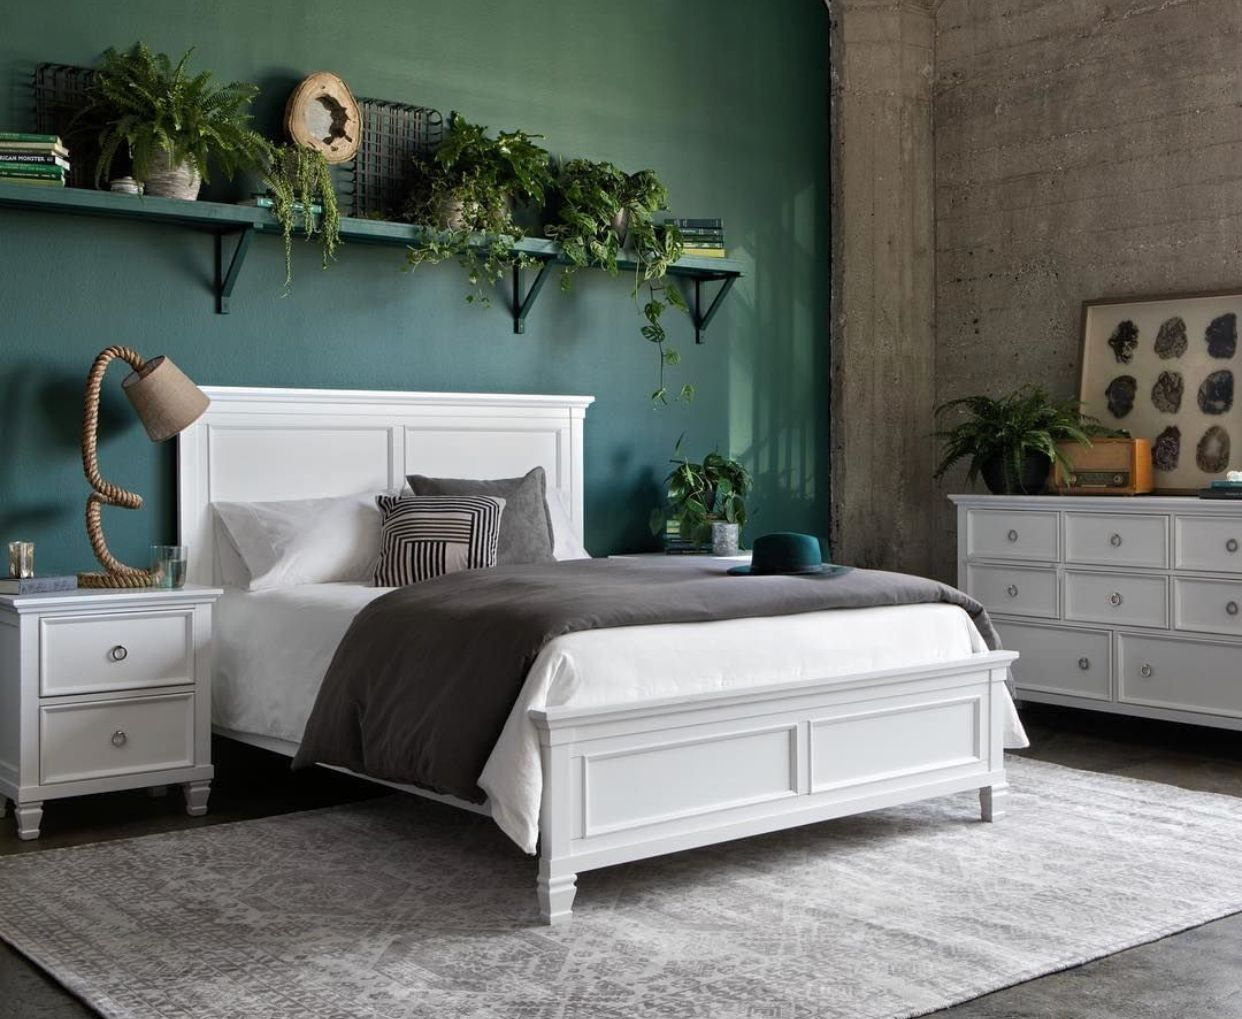 Pin by sasha rodriguez on i love nest in pinterest bedroom